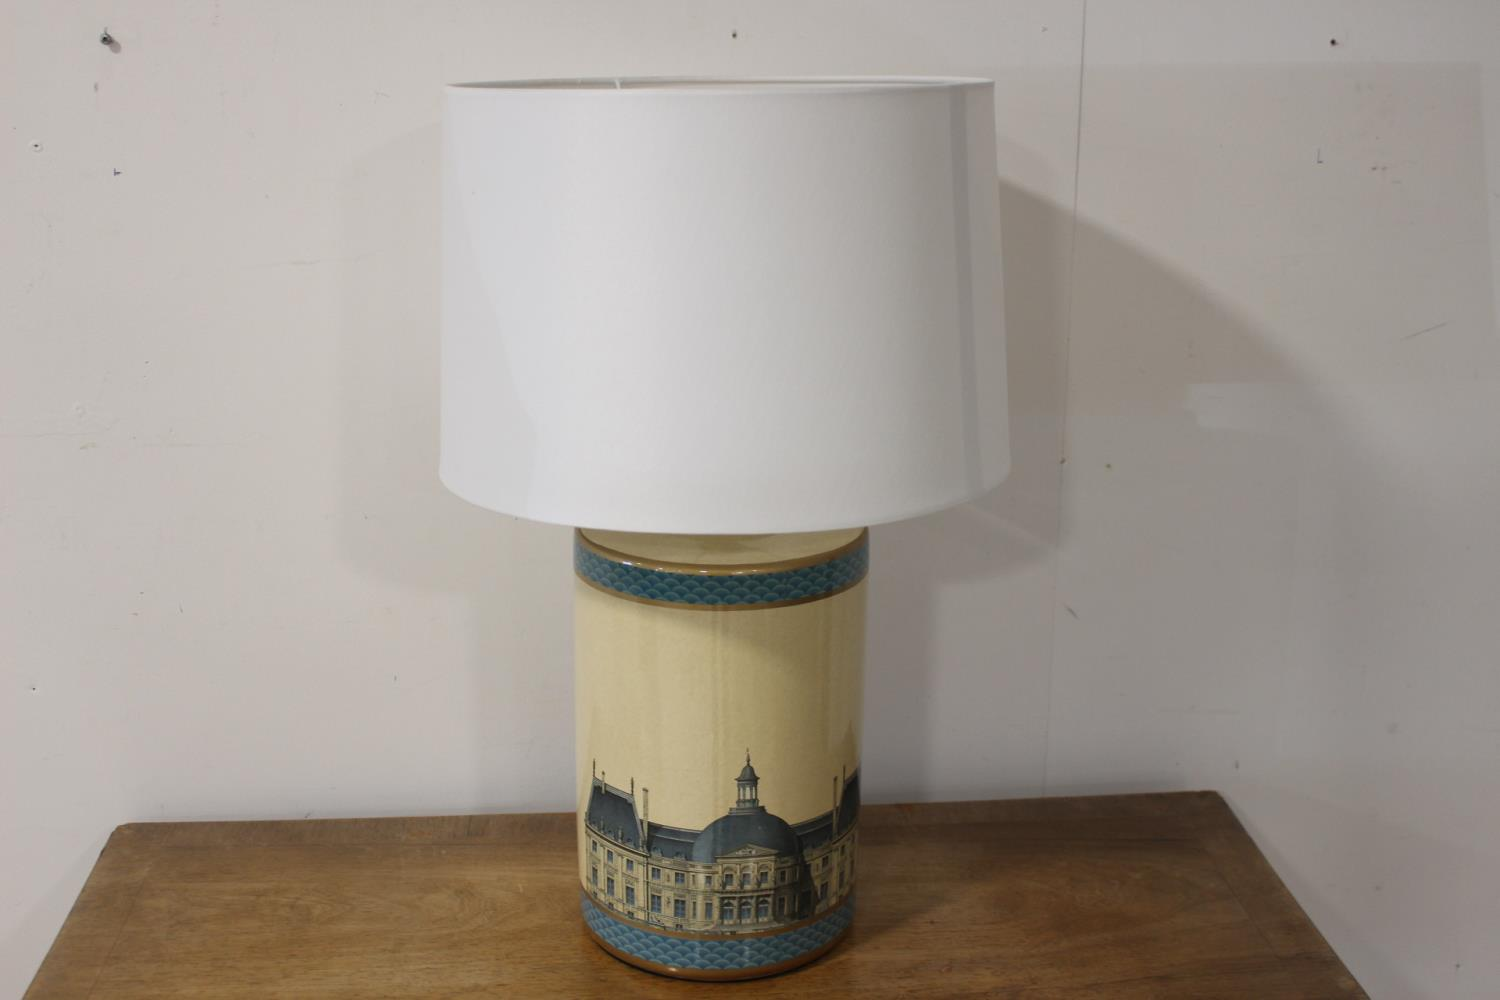 Pair of ceramic table lamps - Image 2 of 2